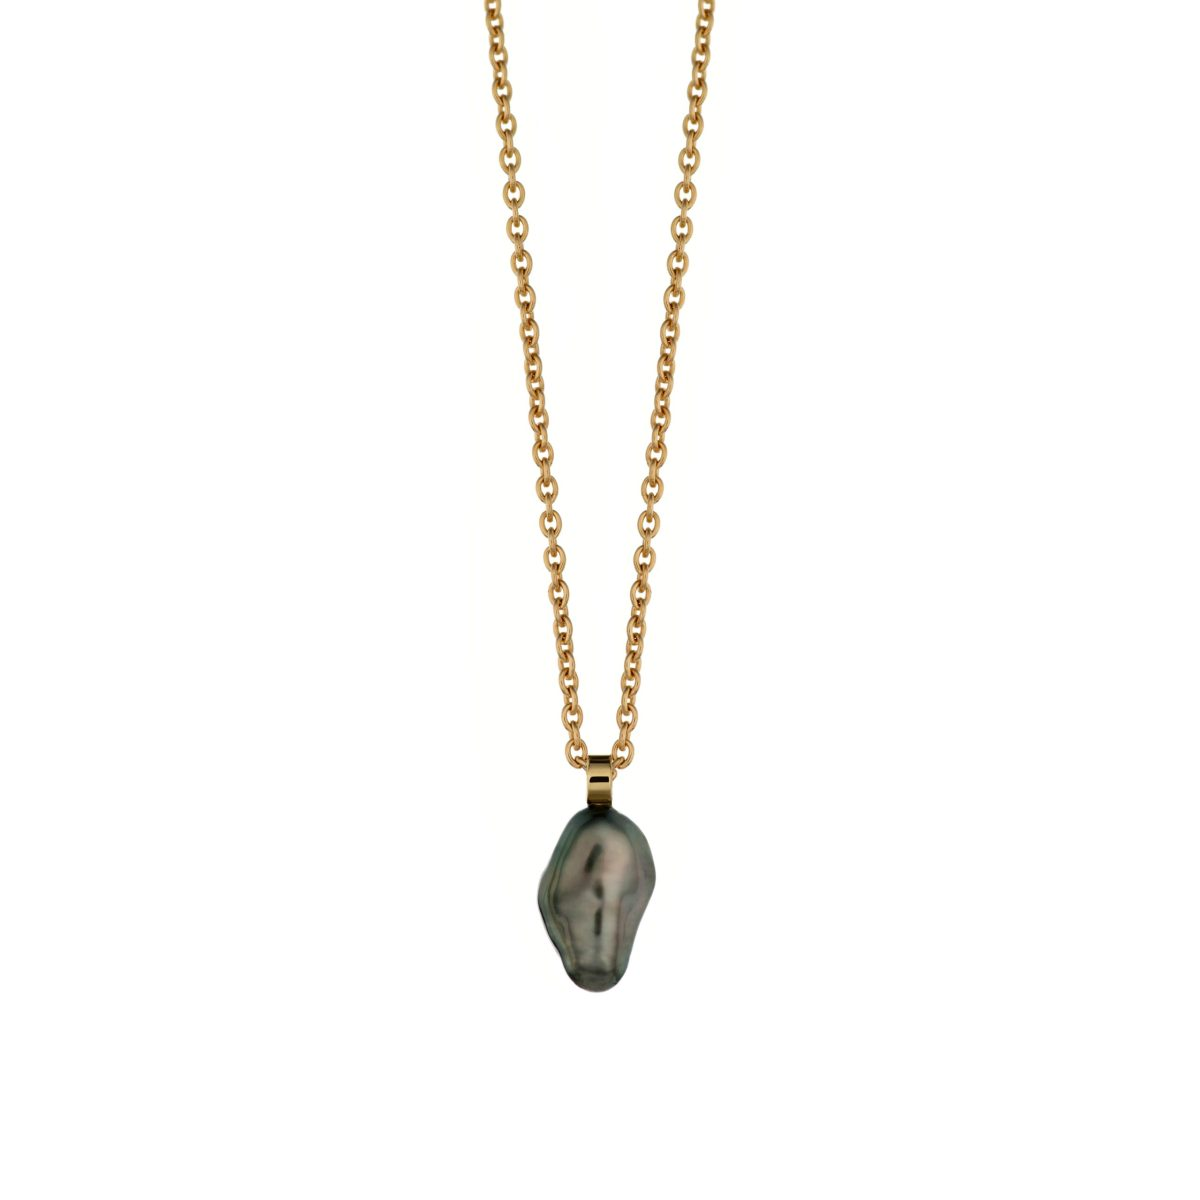 TAHITI KESHI PEARL NECKLACE – 18K GOLD